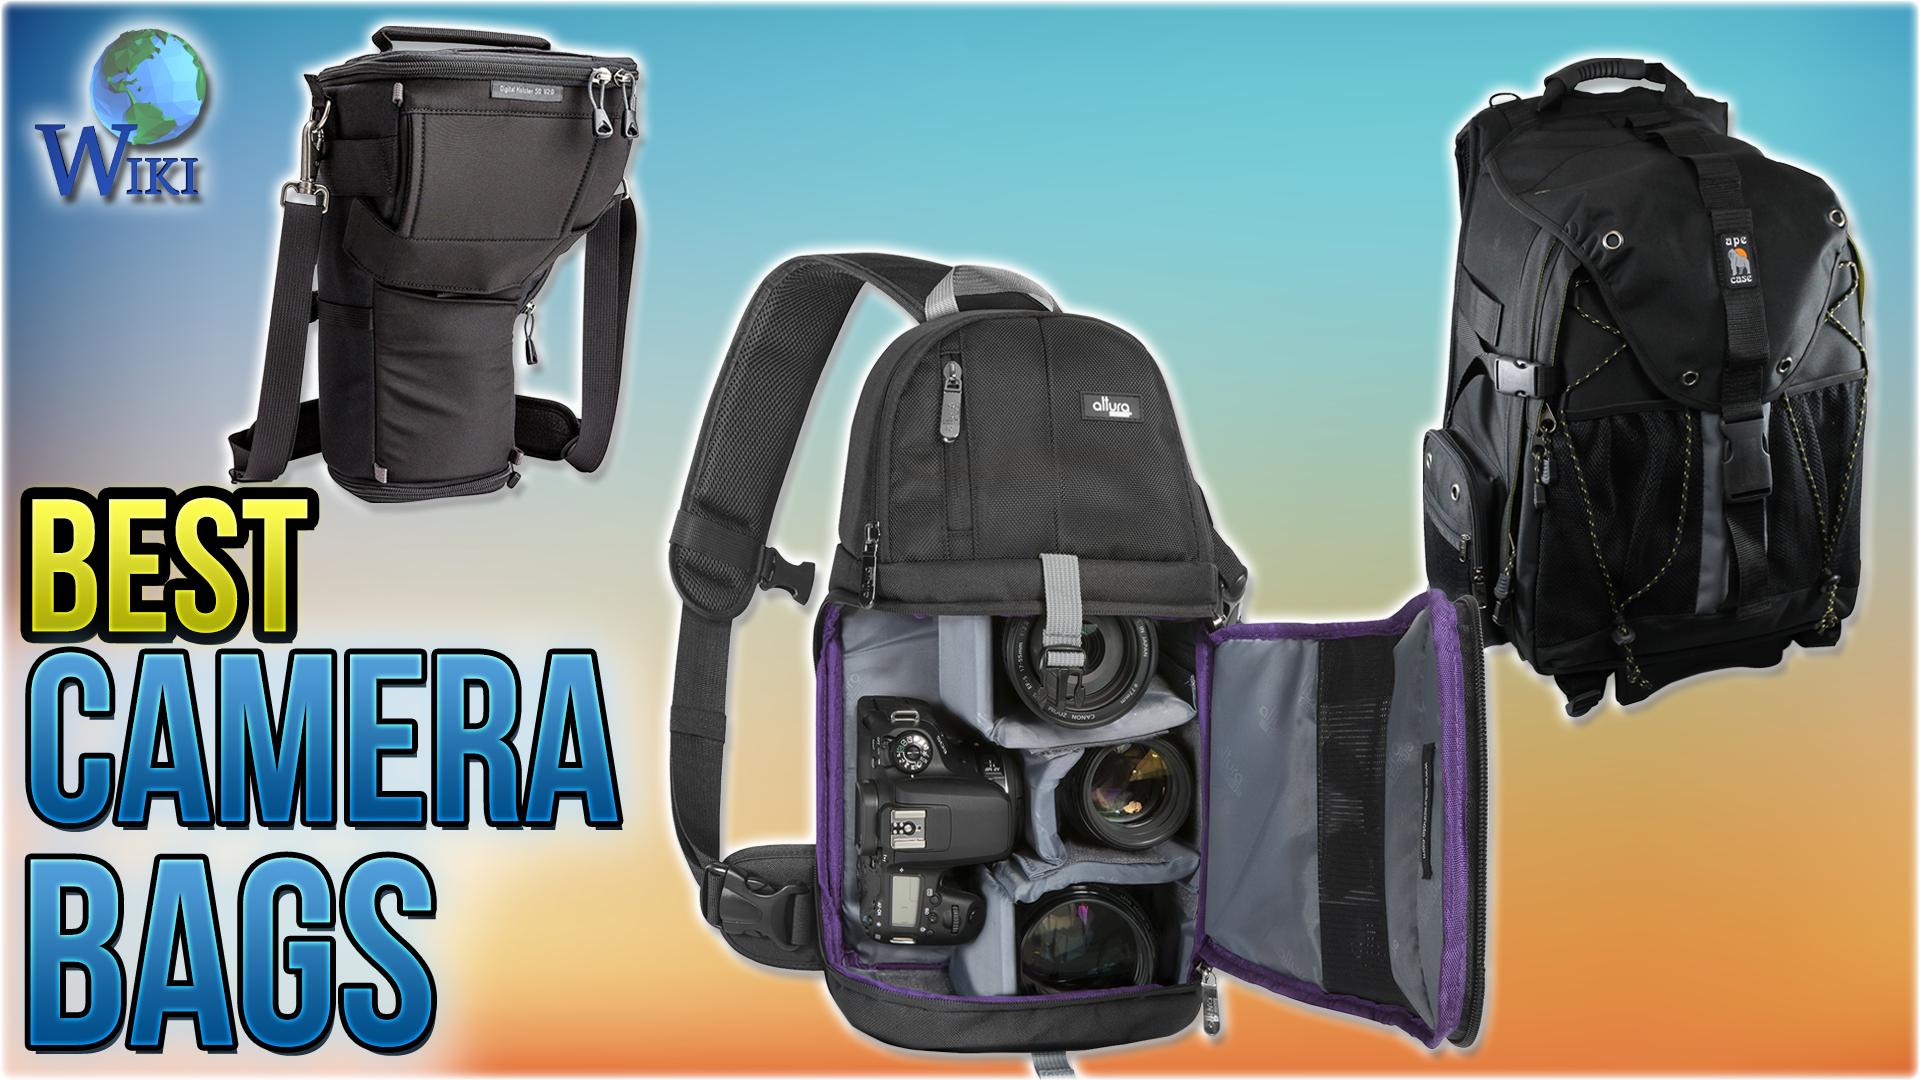 FGKING Camera Backpack Waterproof with Quick Access Dual Compartments Fit DSLR Cameras and 15.6 Laptop Multi-Function Camera Backpack Bag for Outdoor Hiking